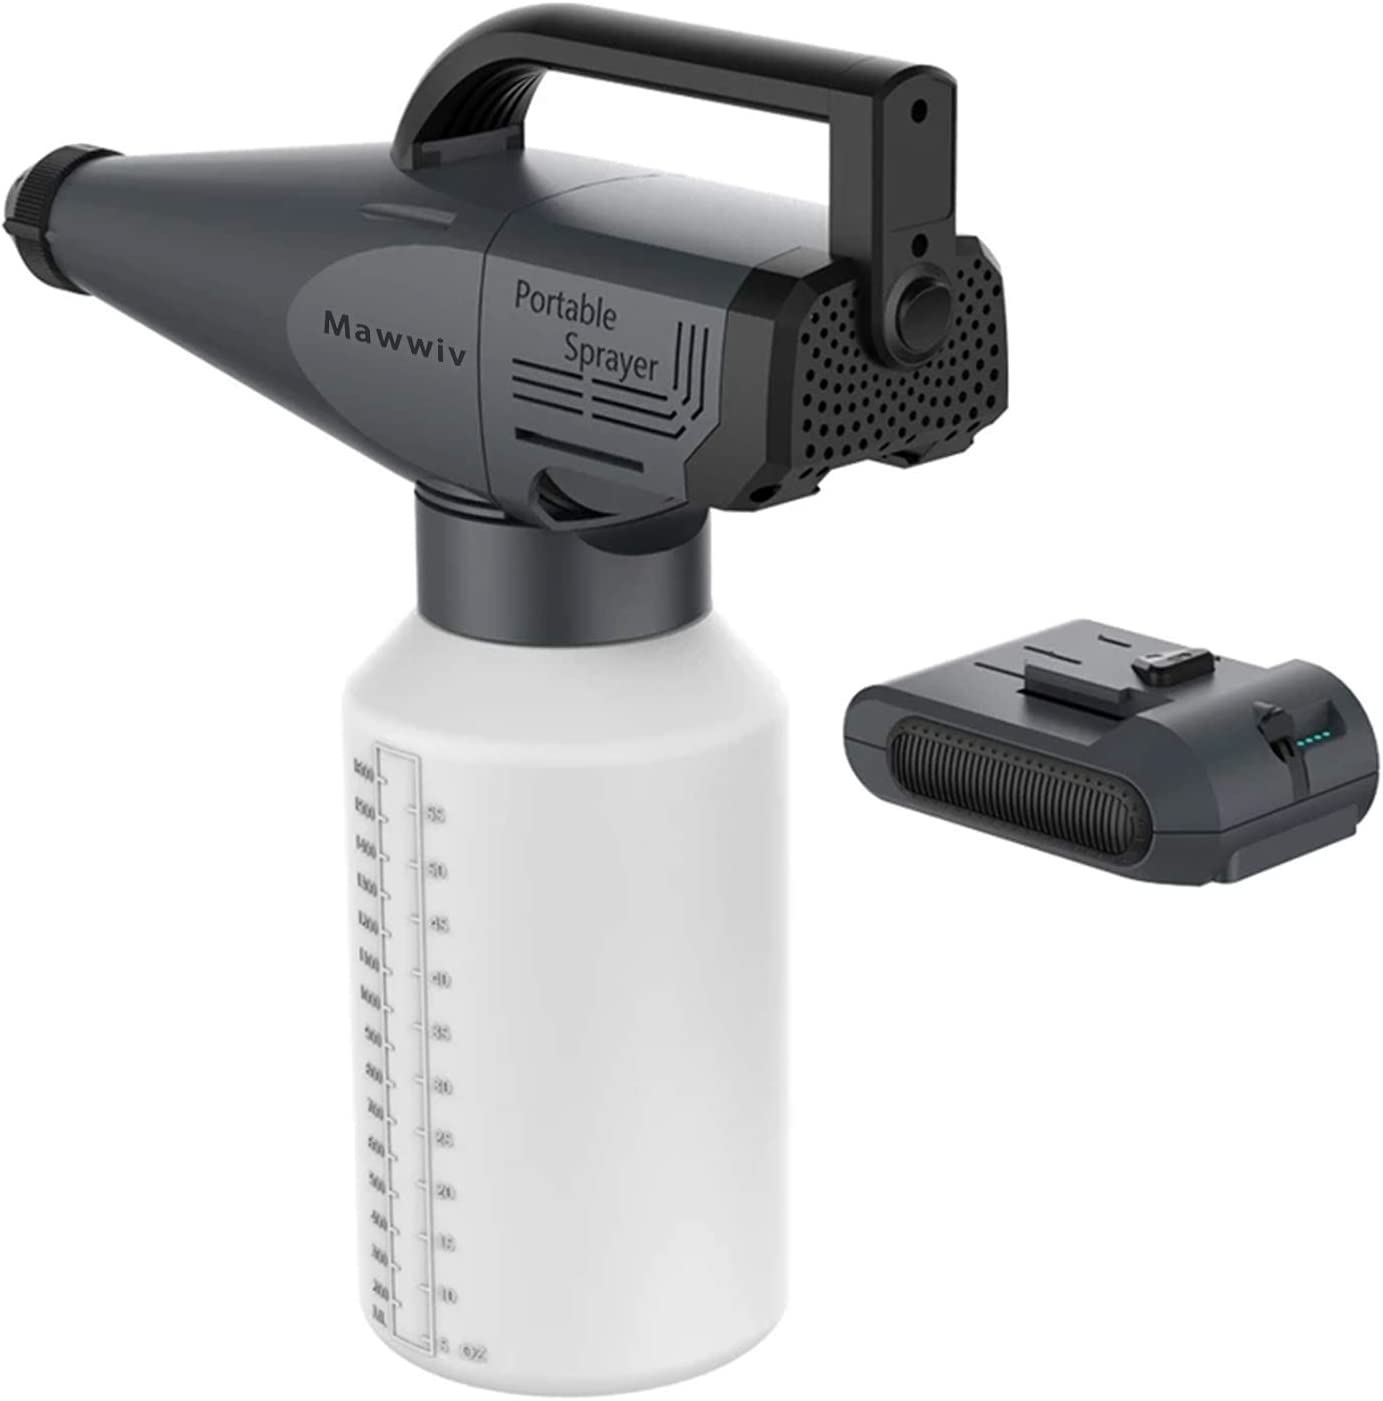 Mawwiv Electrostatic Max 86% OFF Sprayer Portable Rechargeable Popular Cordless Spr